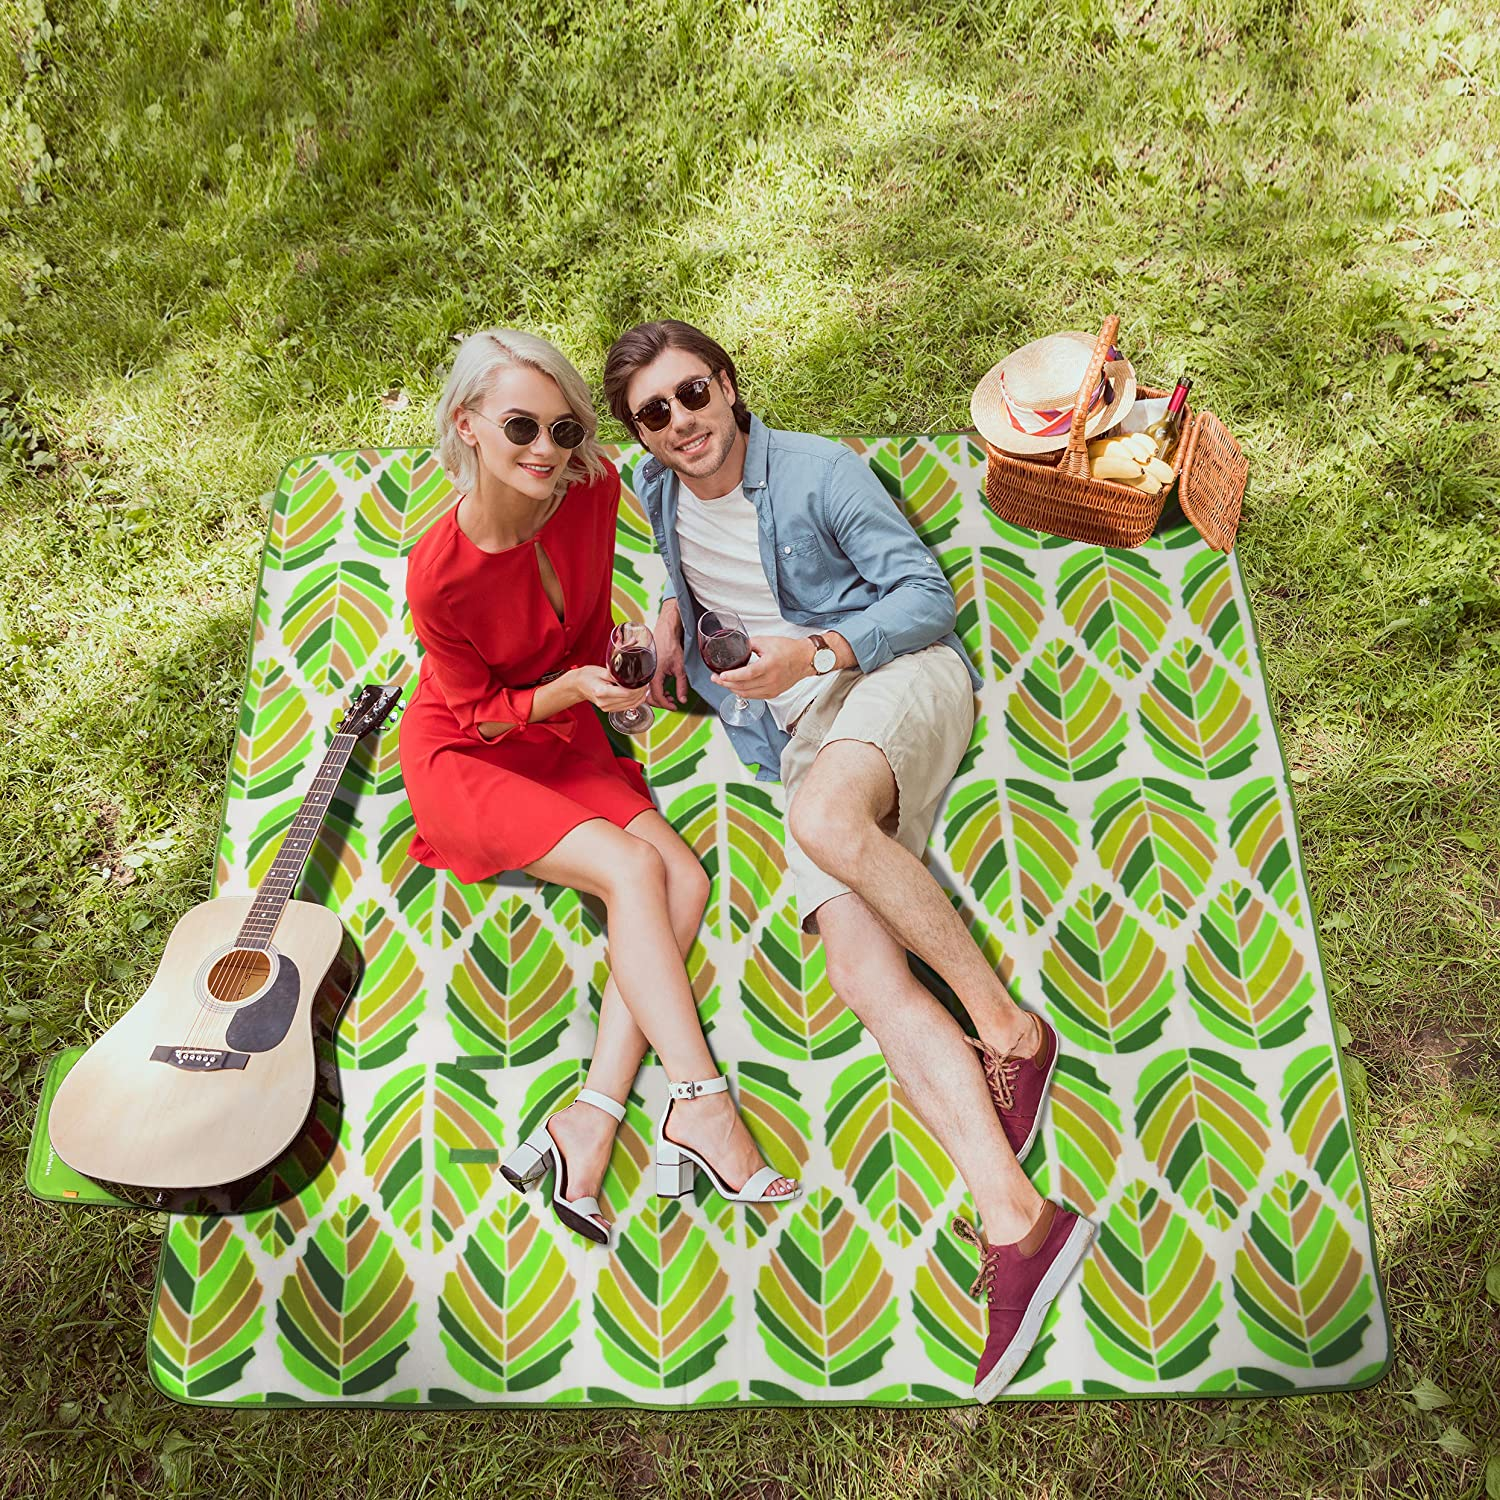 Blue Green Stripes WolfWise 200 x 200cm XXL Picnic Blanket Extra Large Fleece Beach Mat with Waterproof Backing Anti Sand